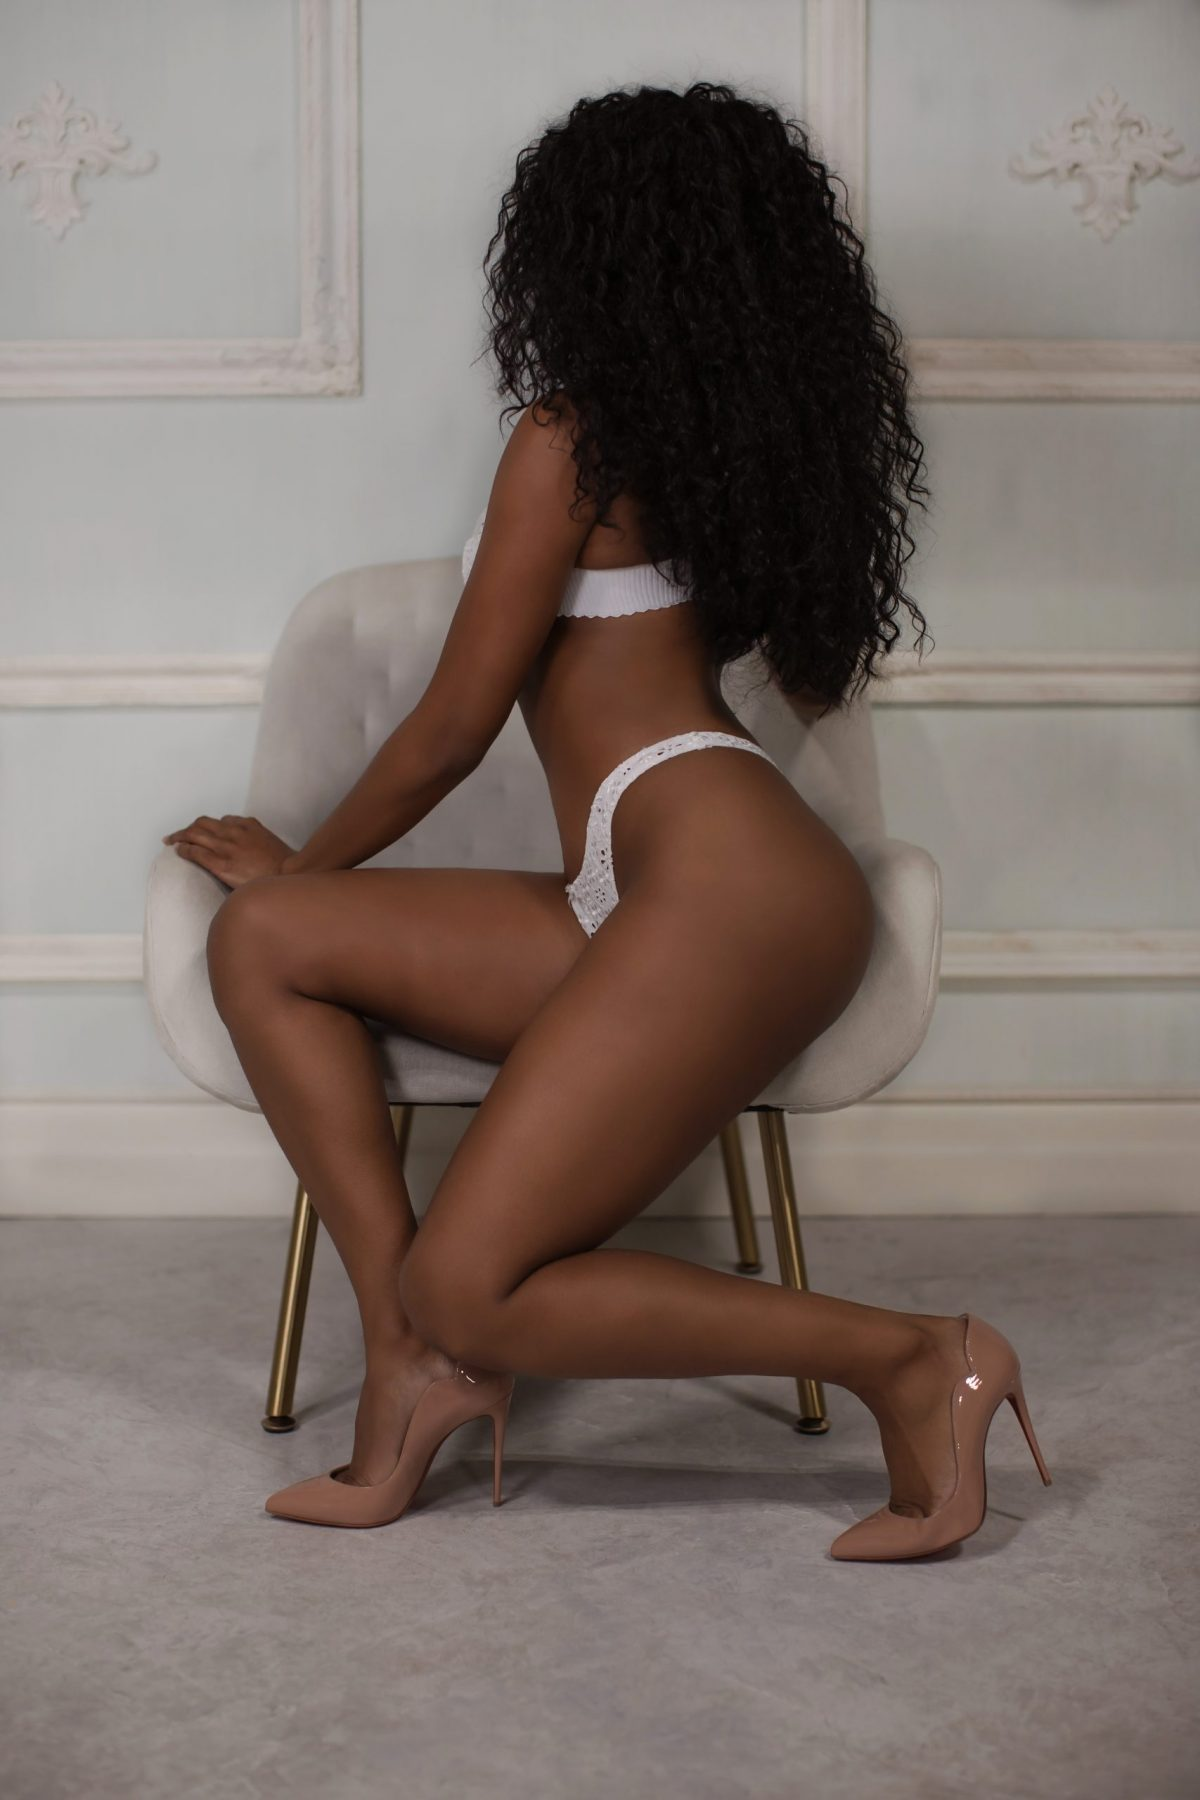 Toronto escorts companion upscale Nina Interests Duo Couple-friendly Disability-friendly Non-smoking Age Mature Figure Slender Petite Breasts Natural Hair Brunette Ethnicity Latina Black Tattoos Small Arrival